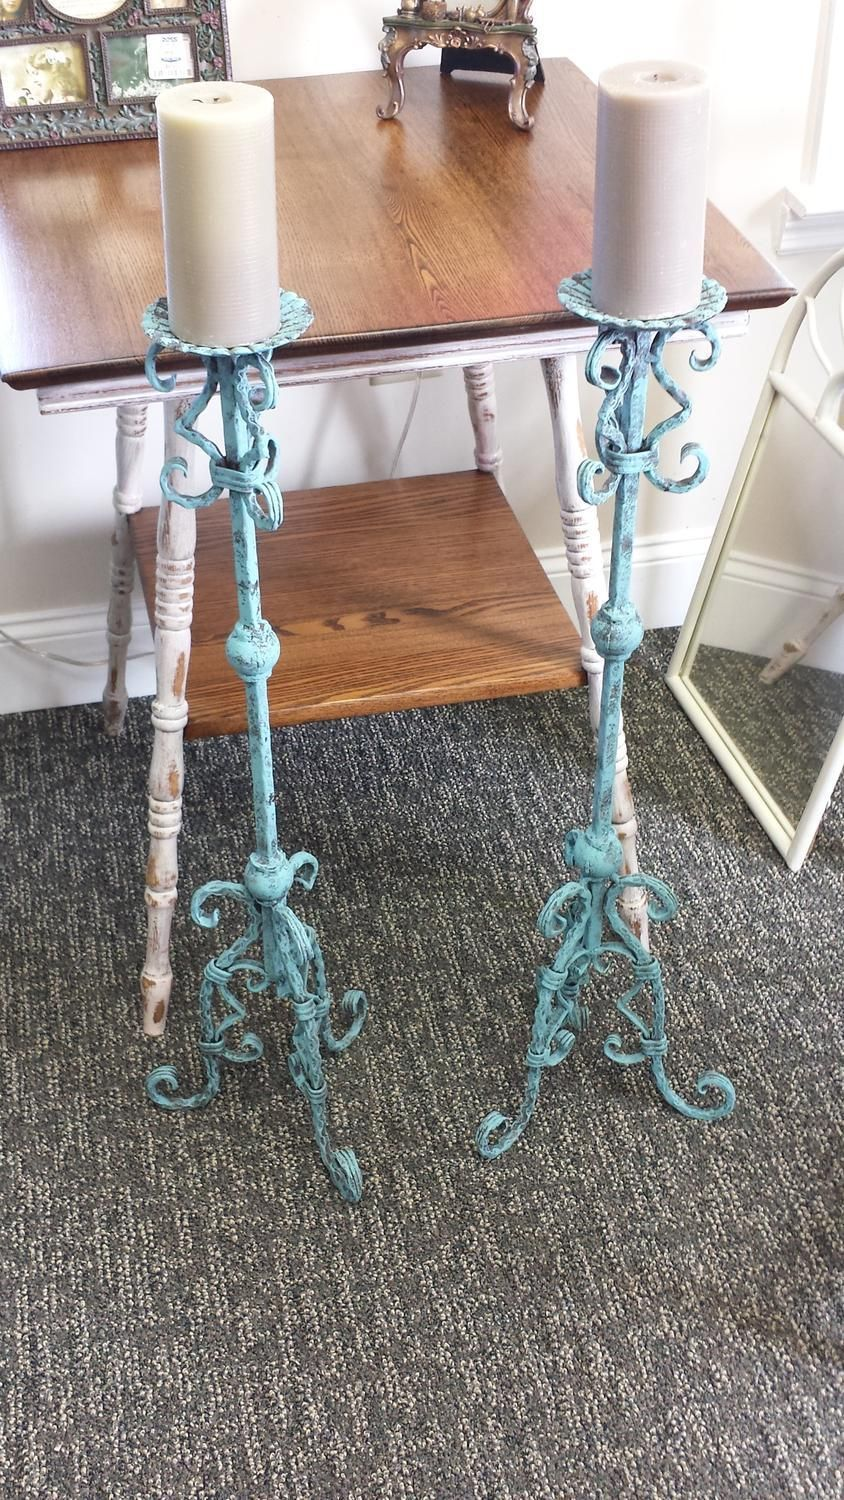 Vintage Wrought Iron Floor Candle Holders 33 Tall Floor Candle